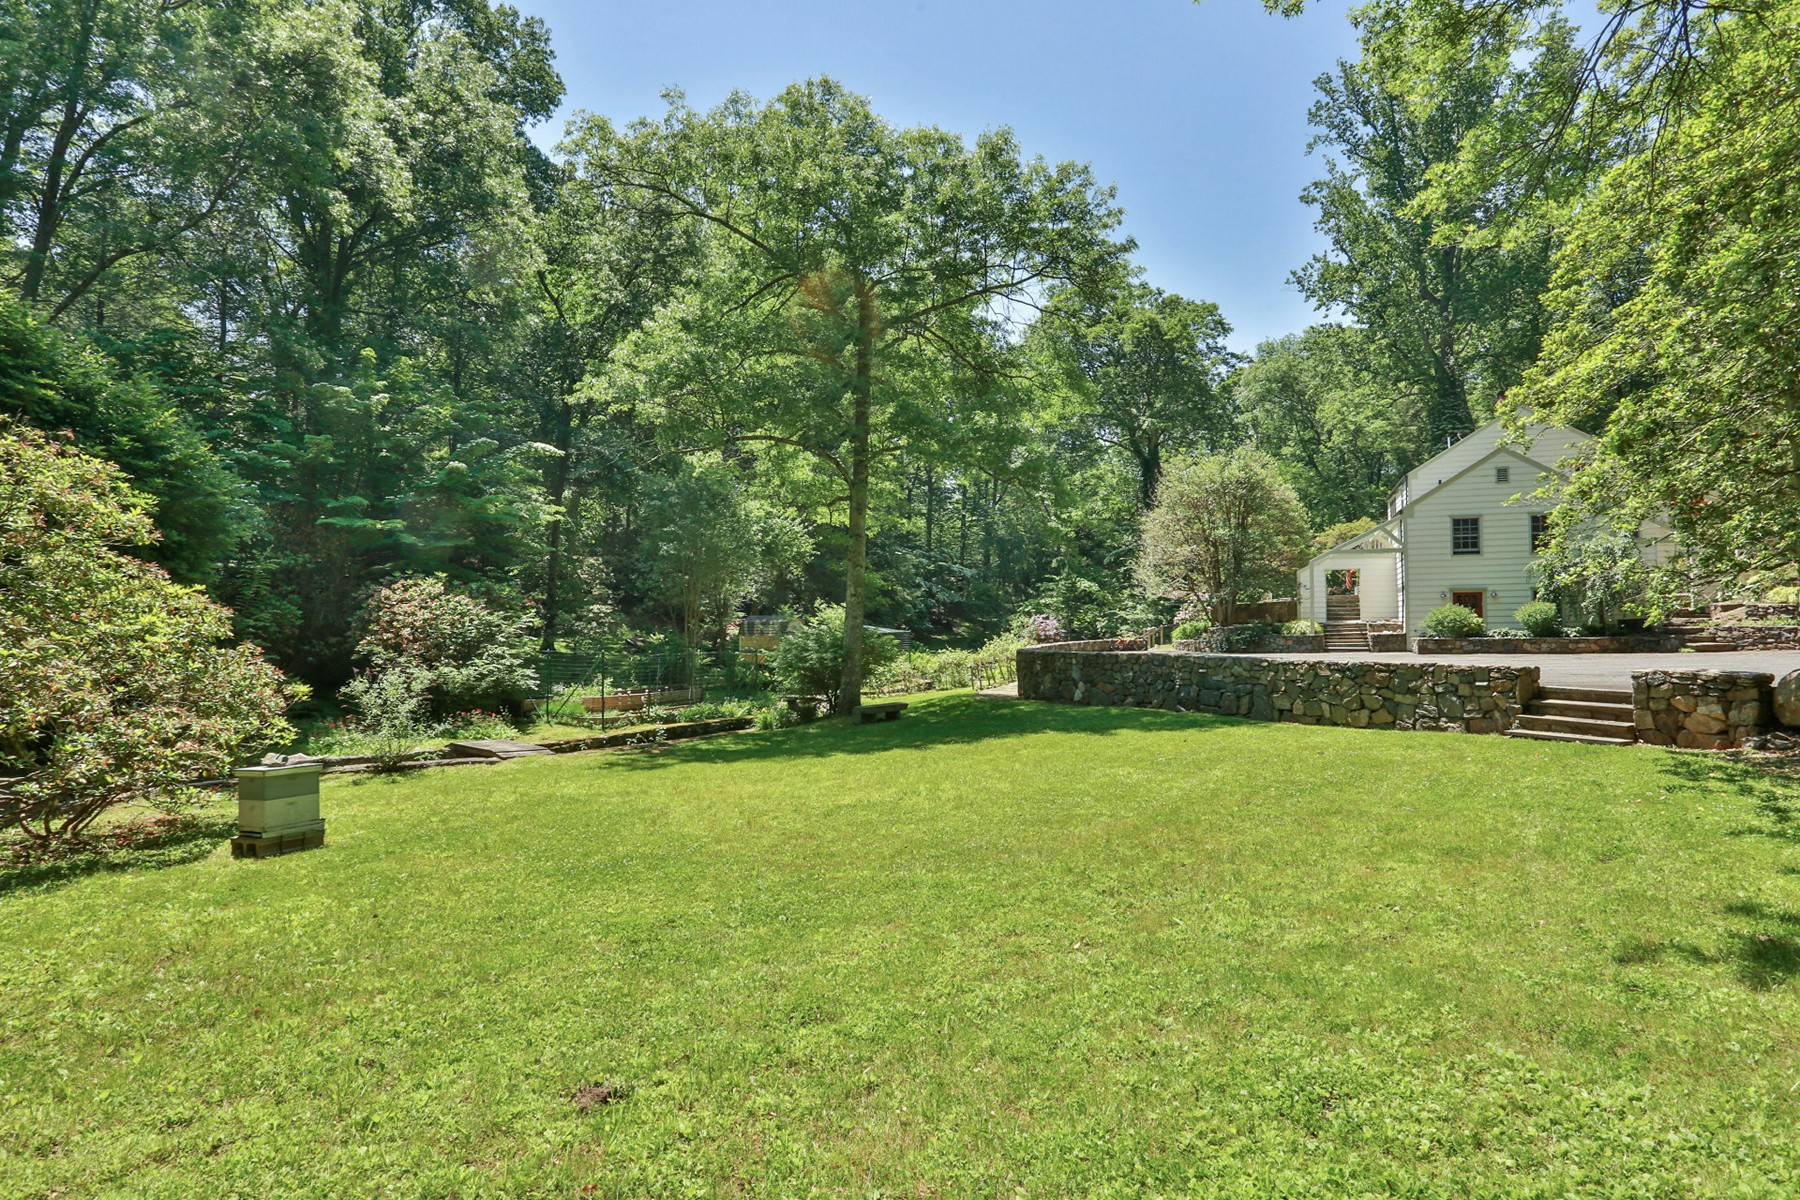 Single Family Home for Sale at Idyllic In-town Estate 76 Marcourt Dr Chappaqua, New York 10514 United States